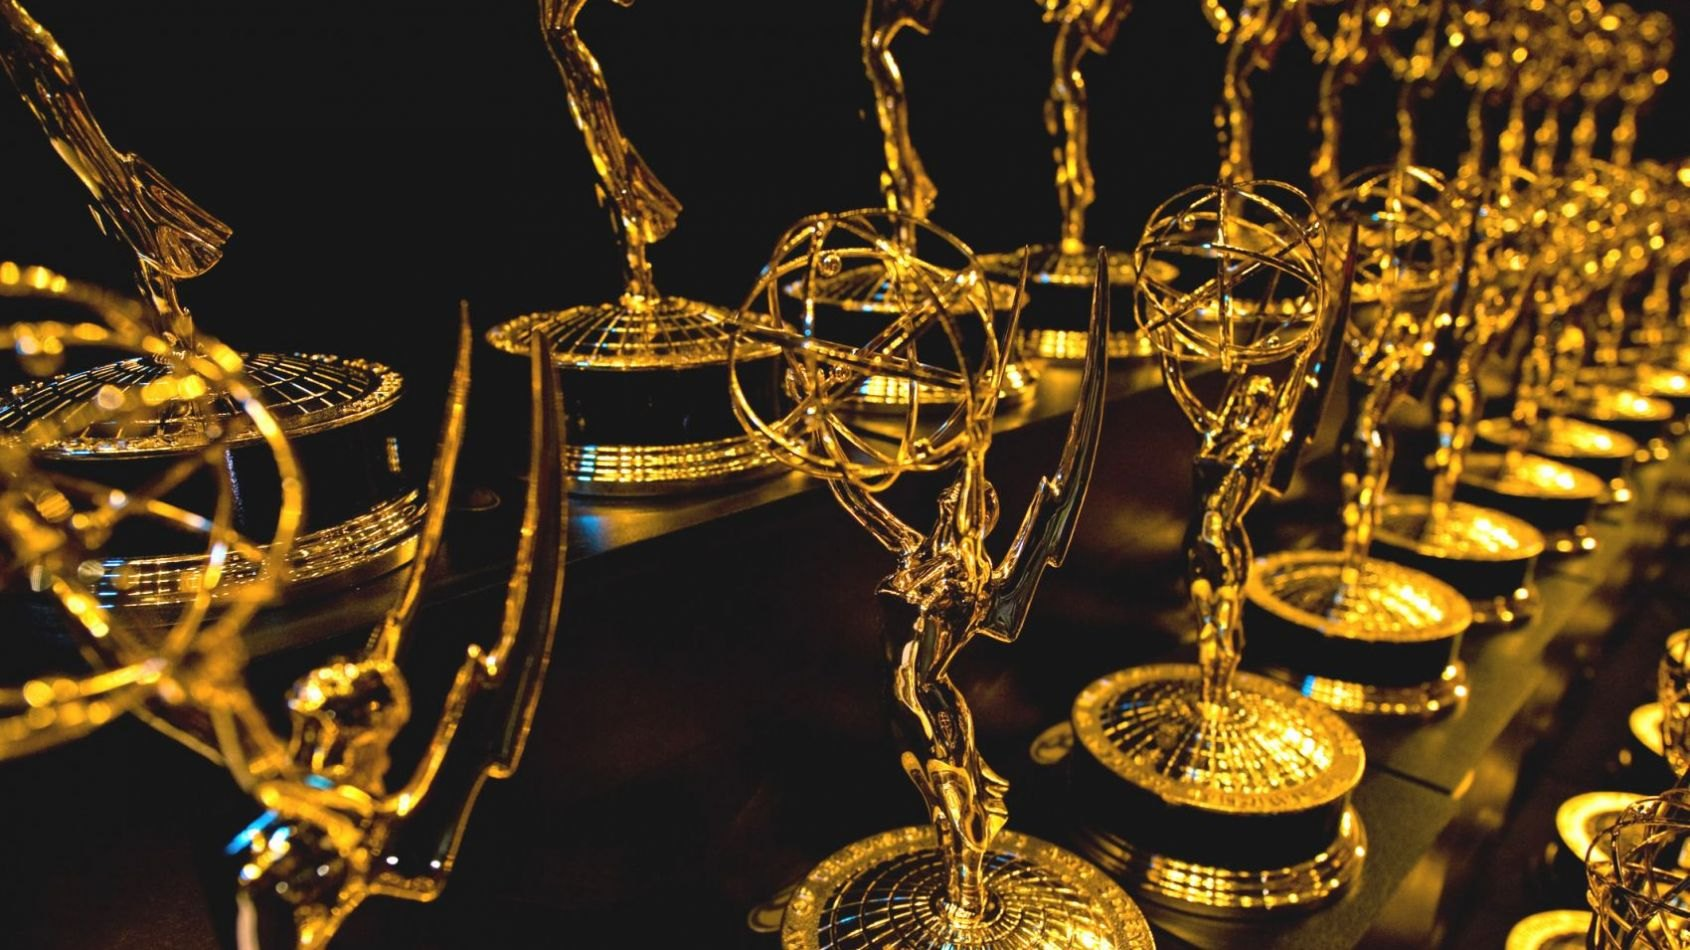 Des nominations pour Star Wars aux Emmy Awards